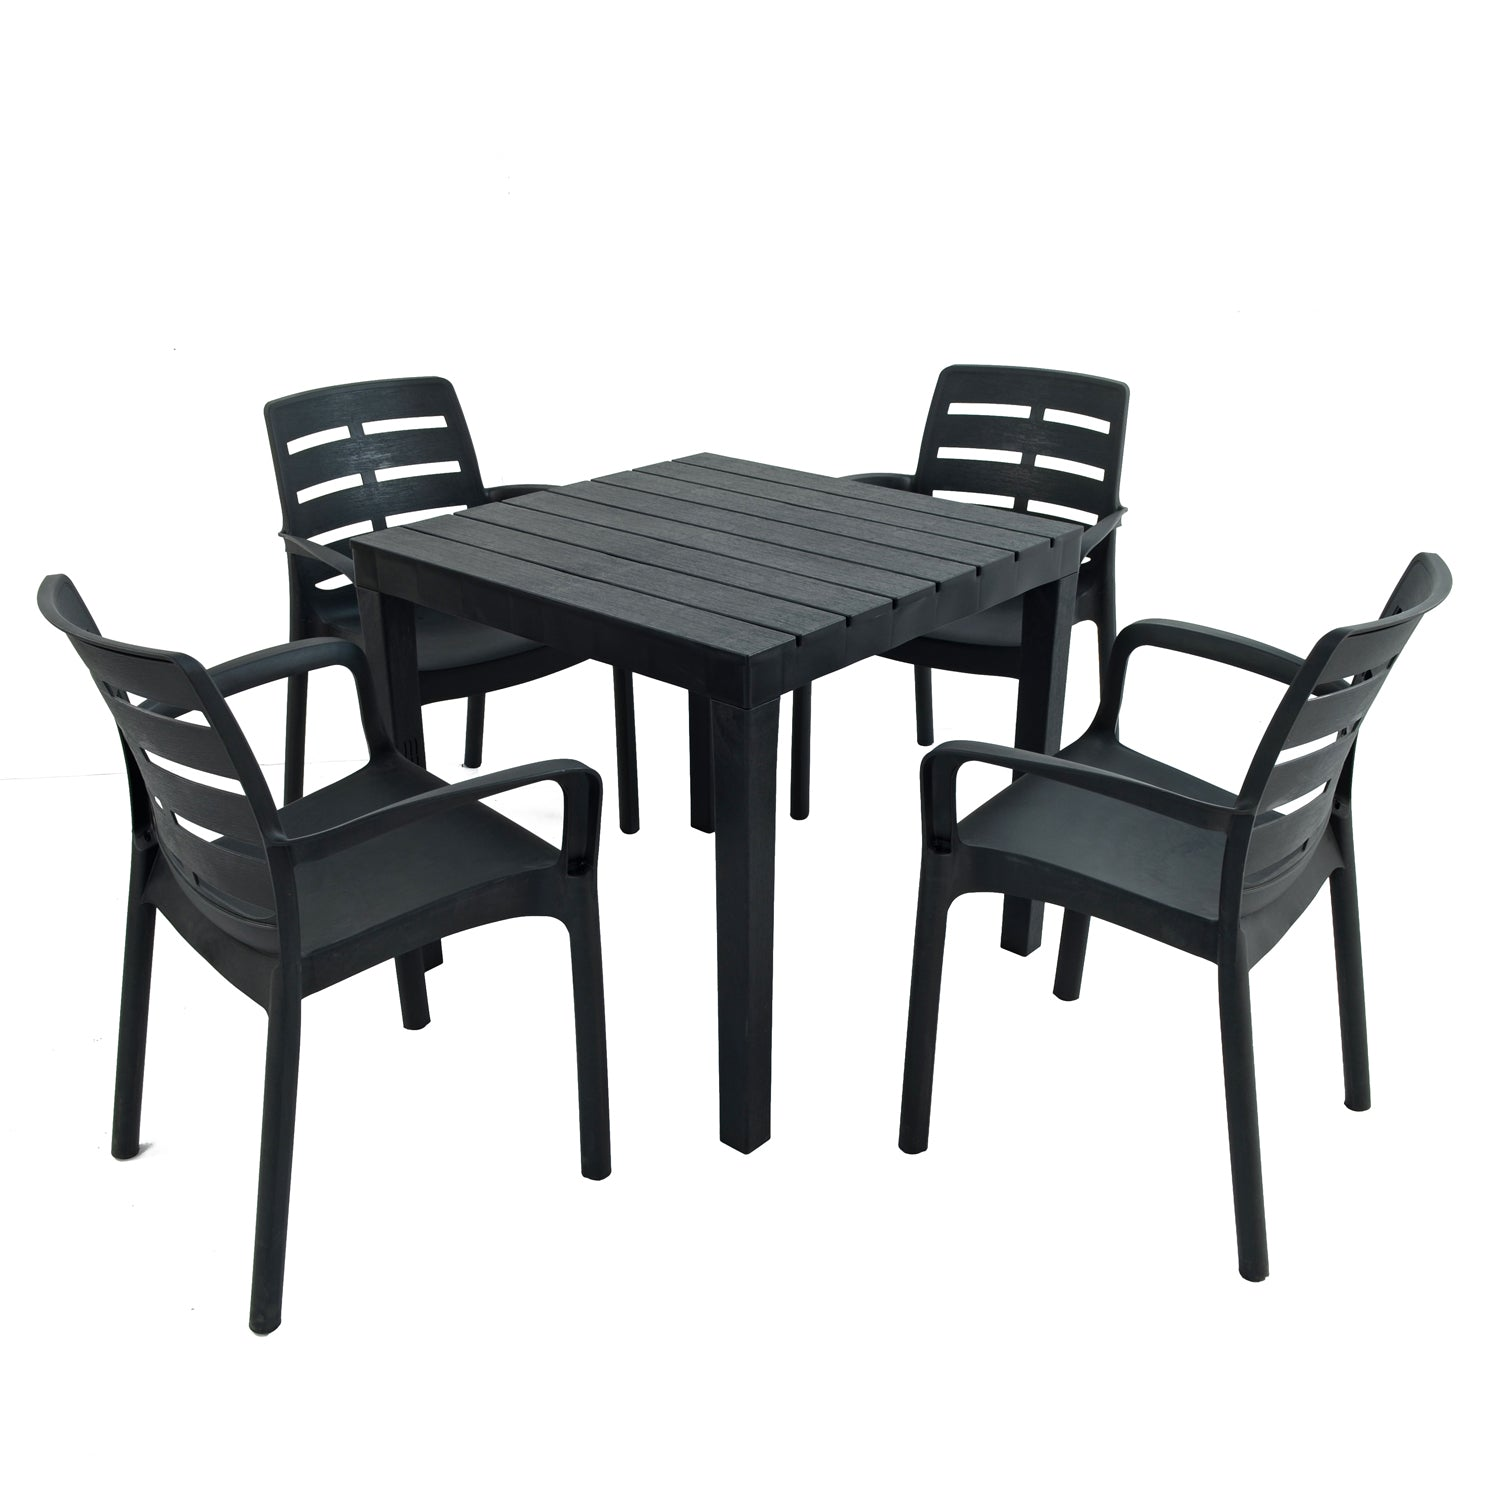 Trabella Roma Square Table With 4 Siena Chairs Garden Set in Anthracite - Ruby's Garden Boutique